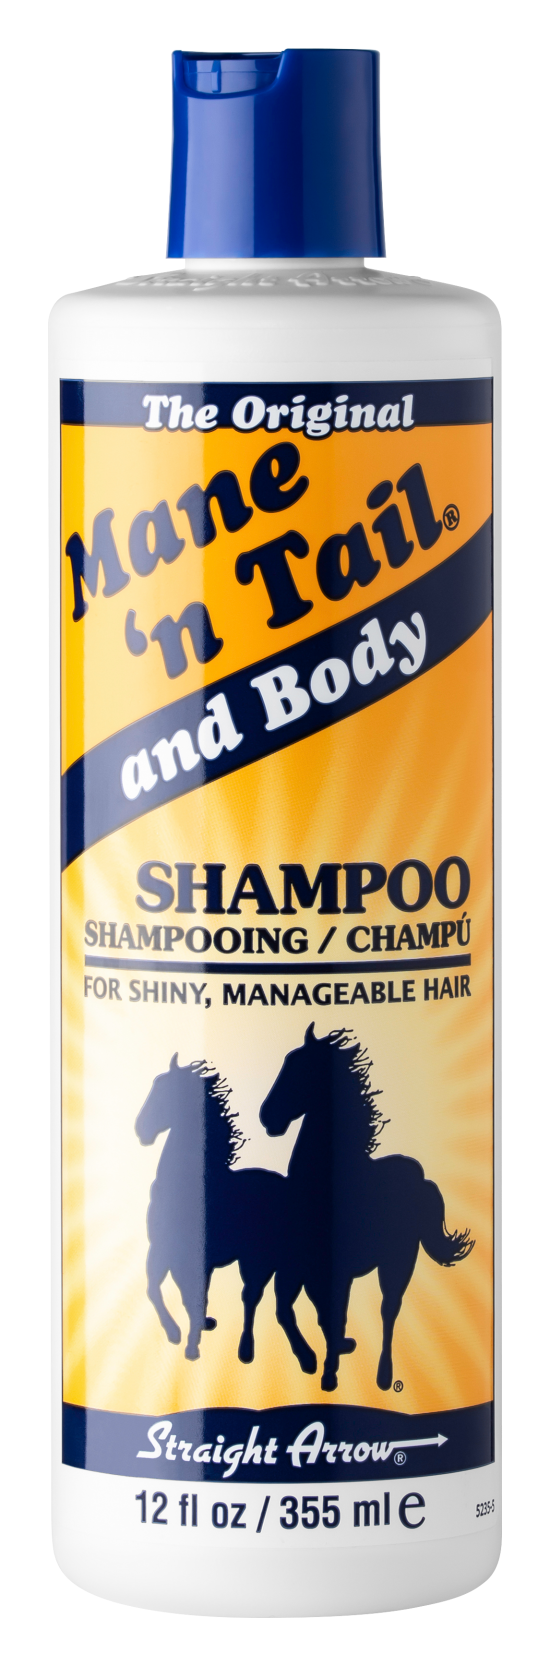 Horse Grooming Shampoo - Mane 'n Tail - Quart/Gallon